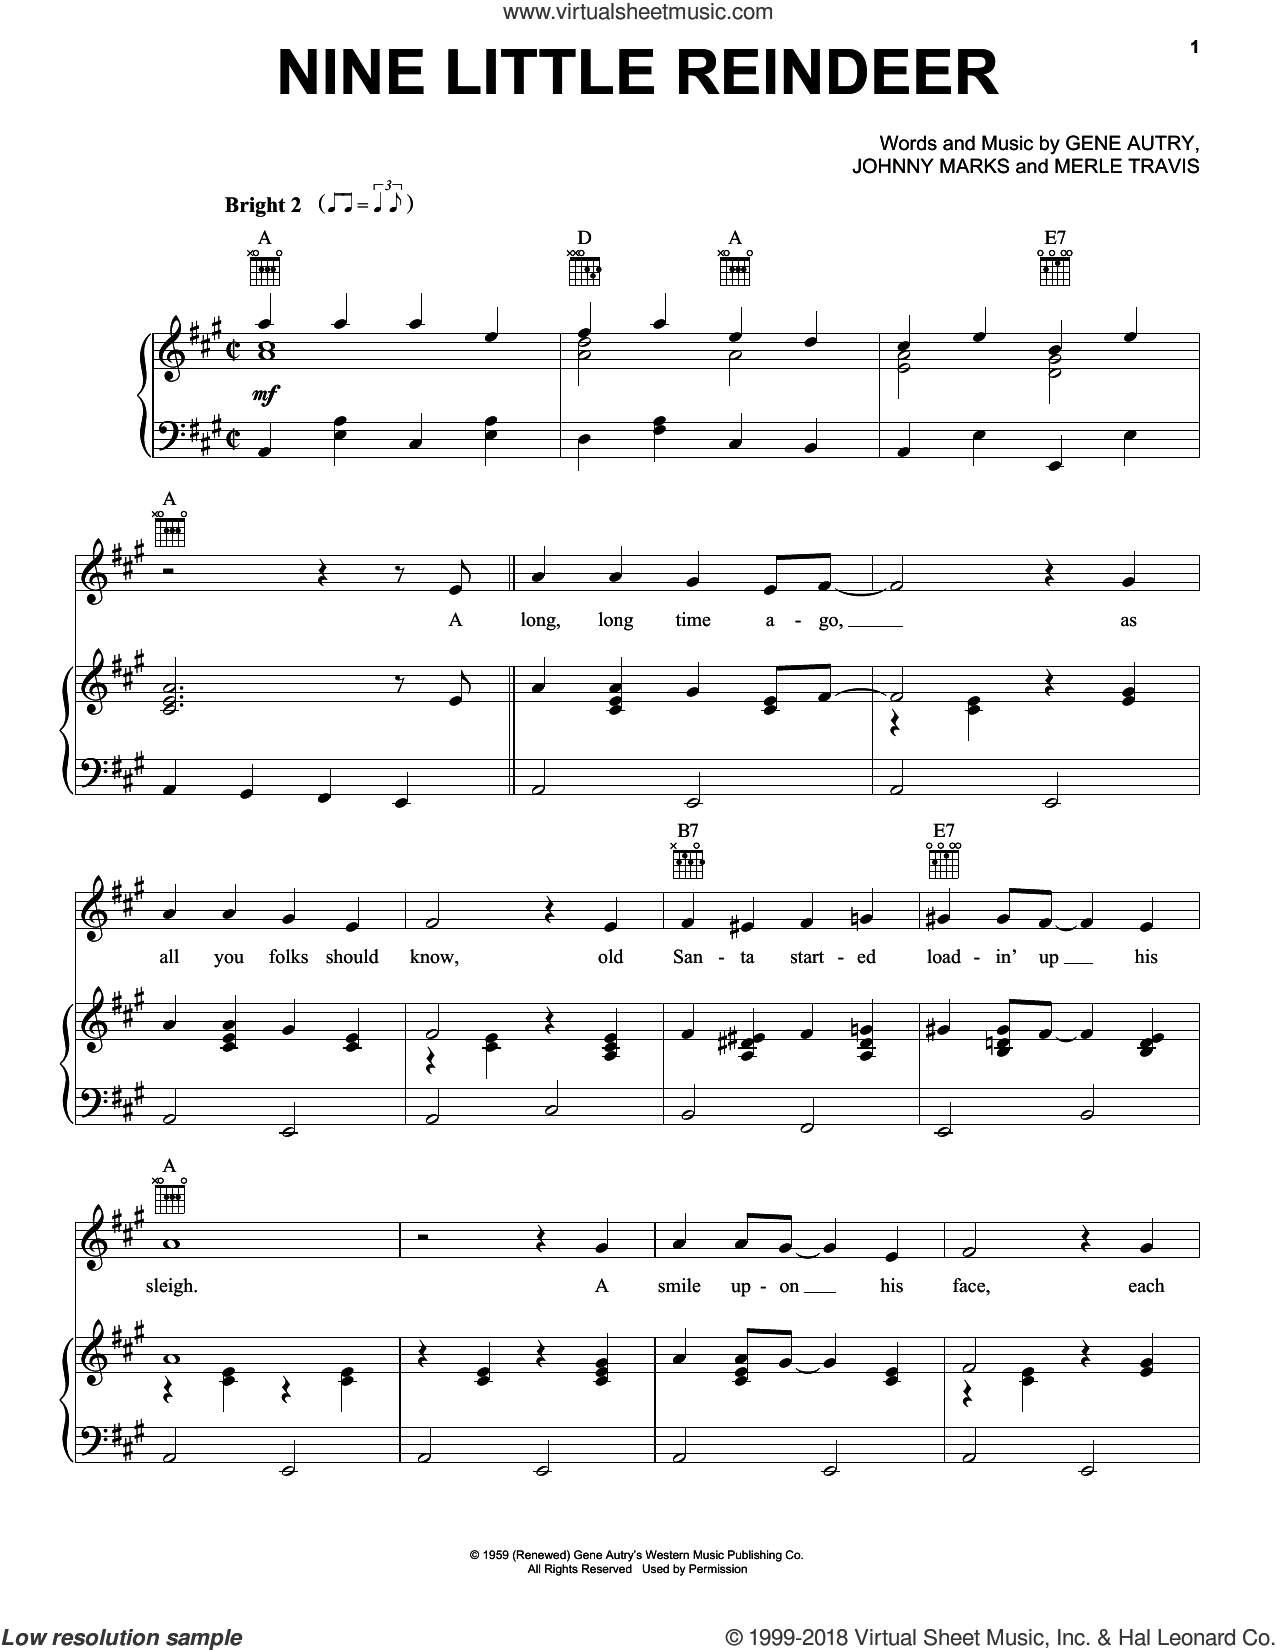 Nine Little Reindeer sheet music for voice, piano or guitar by Gene Autry, Johnny Marks and Merle Travis, intermediate. Score Image Preview.